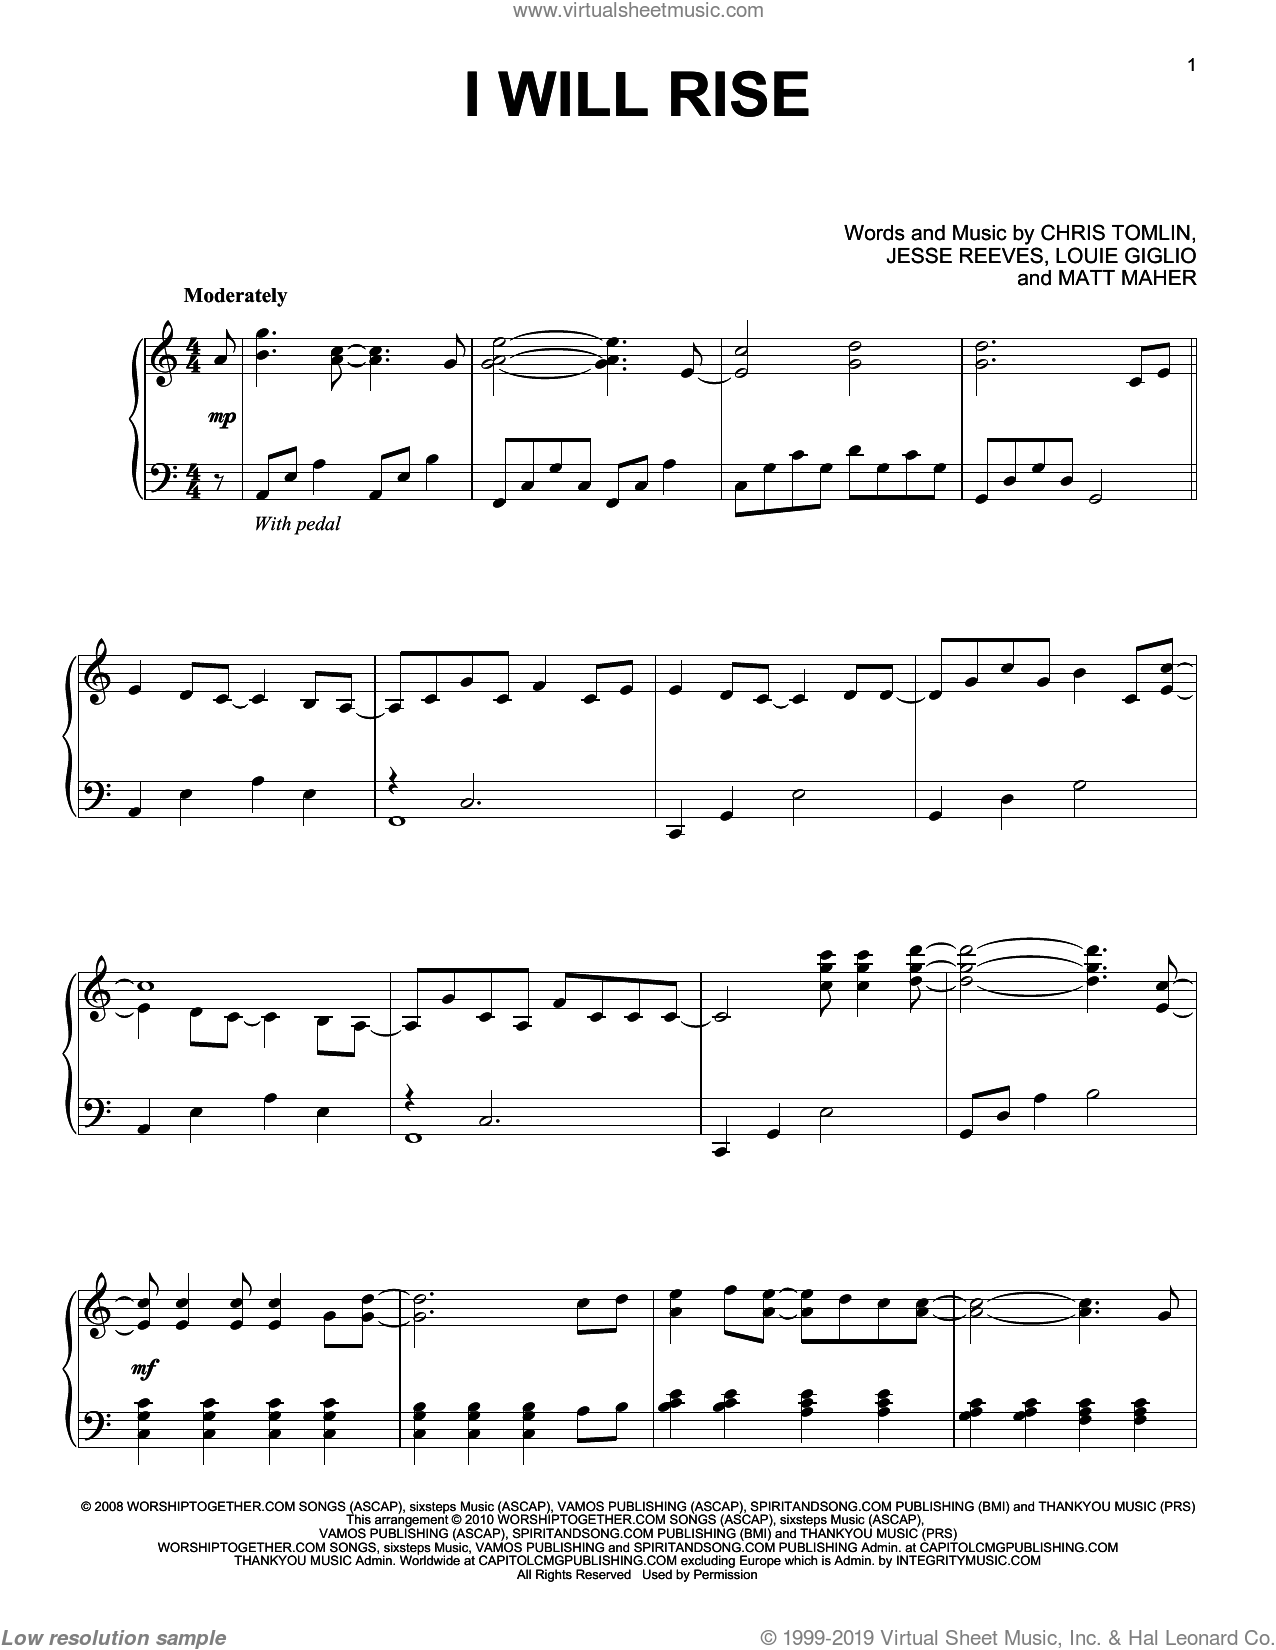 I Will Rise, (intermediate) sheet music for piano solo by Chris Tomlin, Jesse Reeves, Louis Giglio and Matt Maher, intermediate skill level